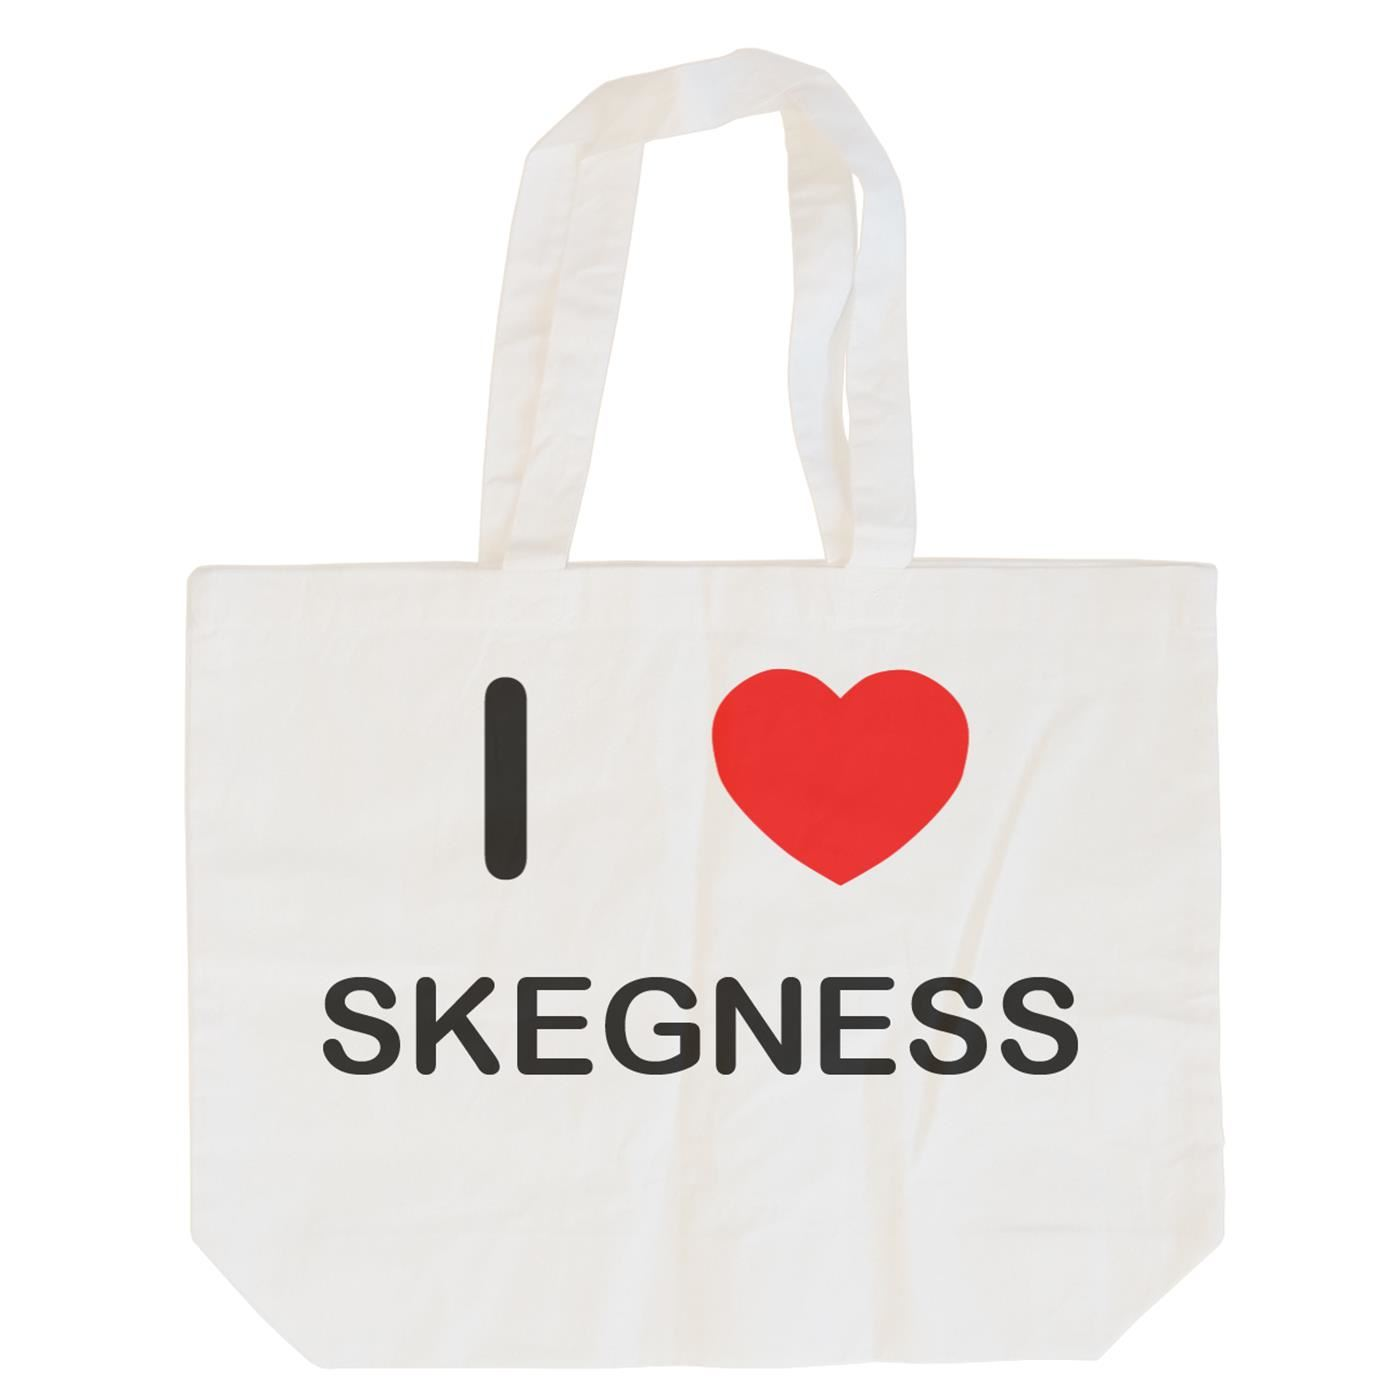 I Love Skegness - Cotton Bag | Size choice Tote, Shopper or Sling